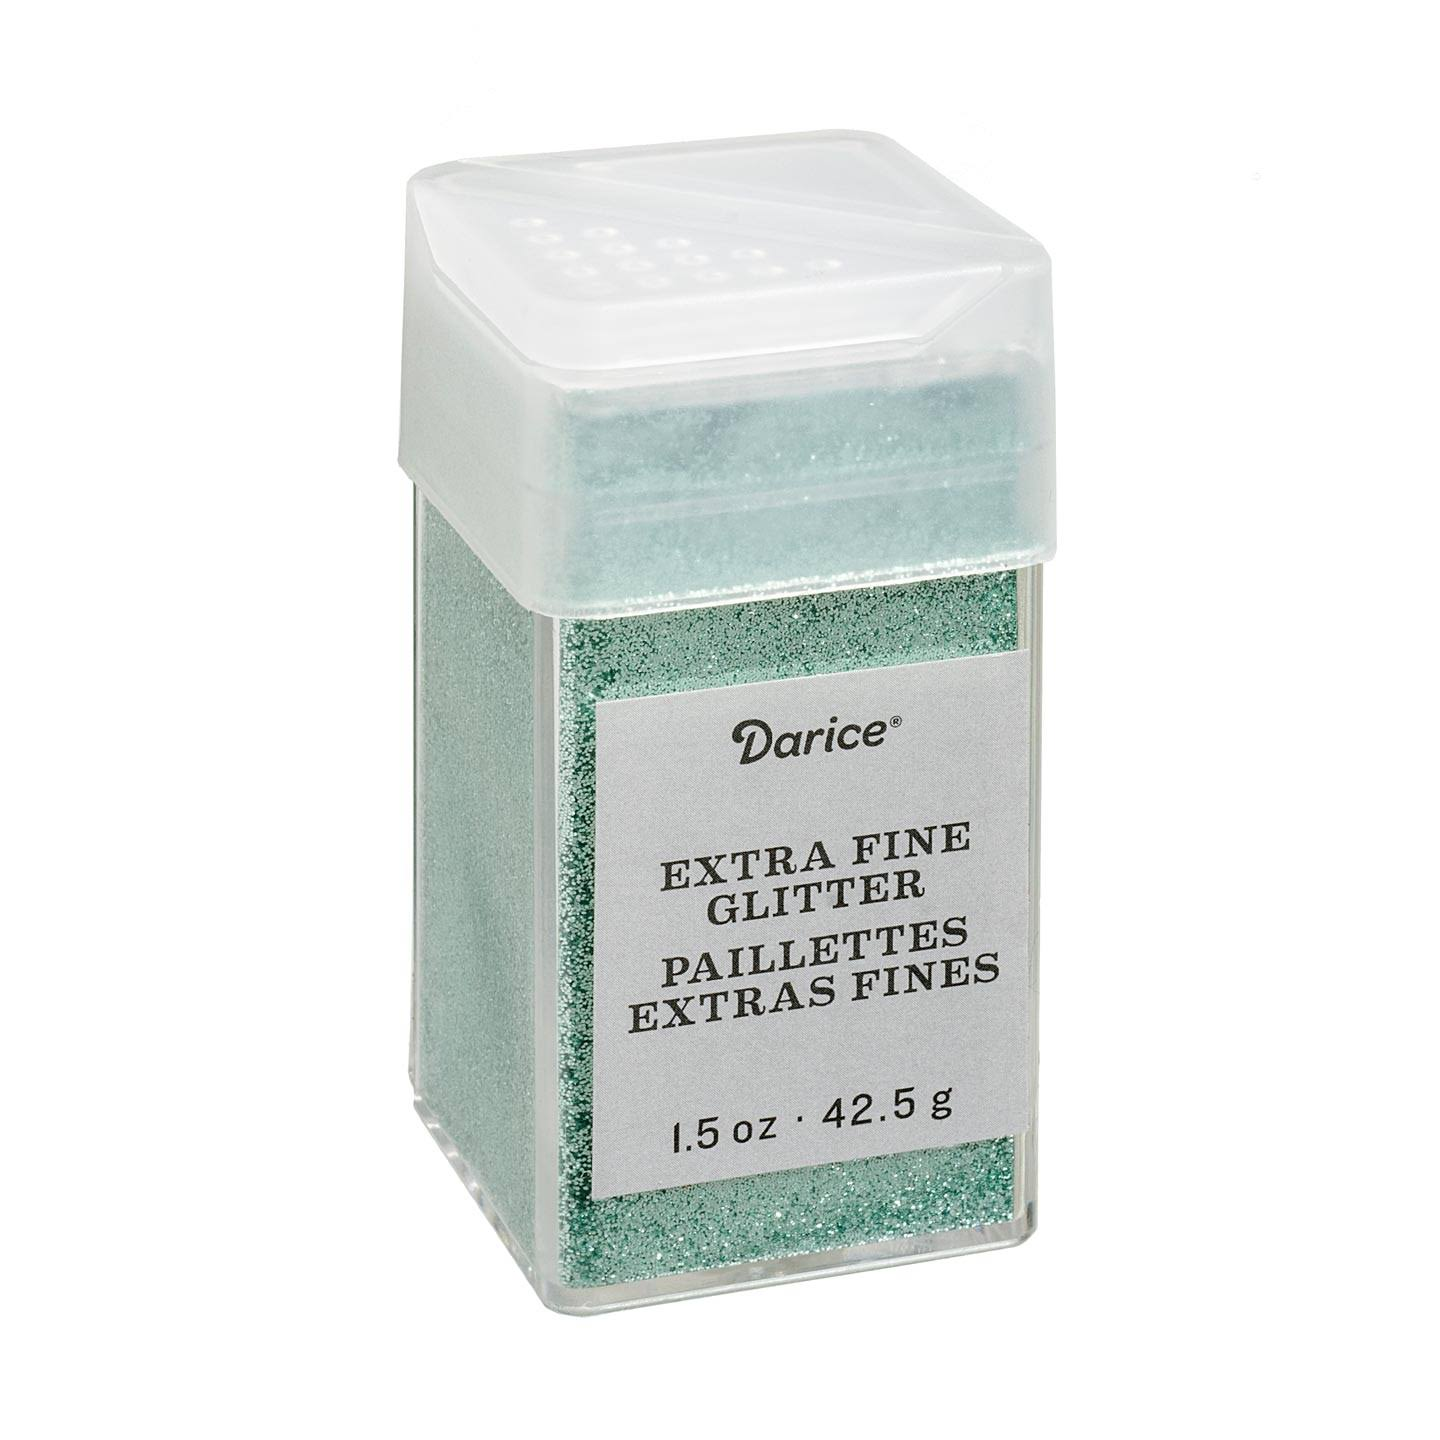 Darice Mint Extra Fine Glitter 1.5 Ounces Canister w/Pour or Shake Lid